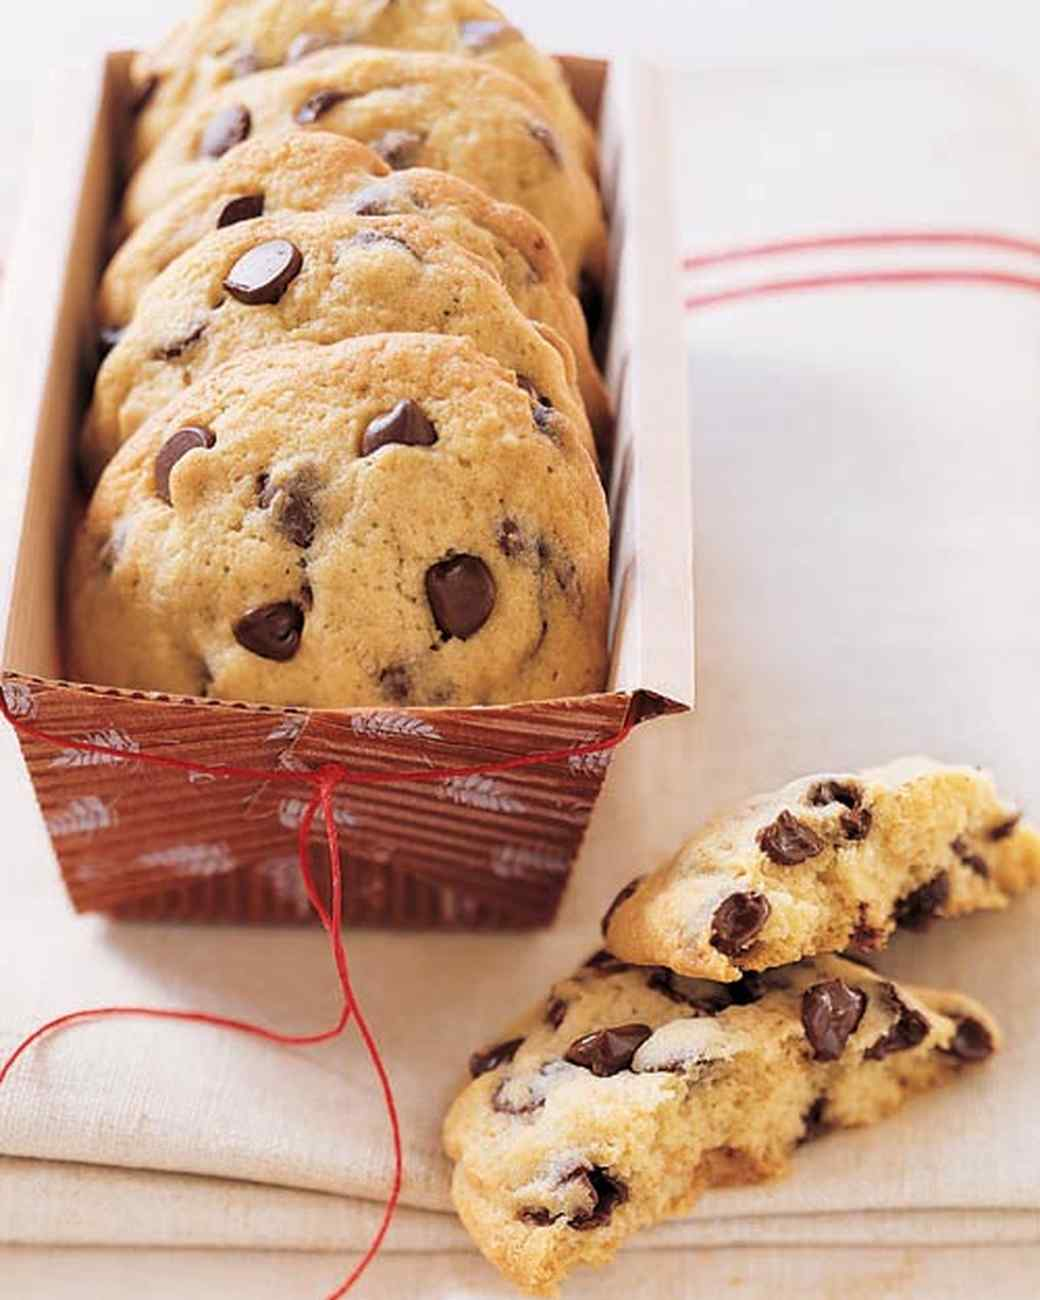 Cakey Chocolate Chip Cookies Recipe | Martha Stewart